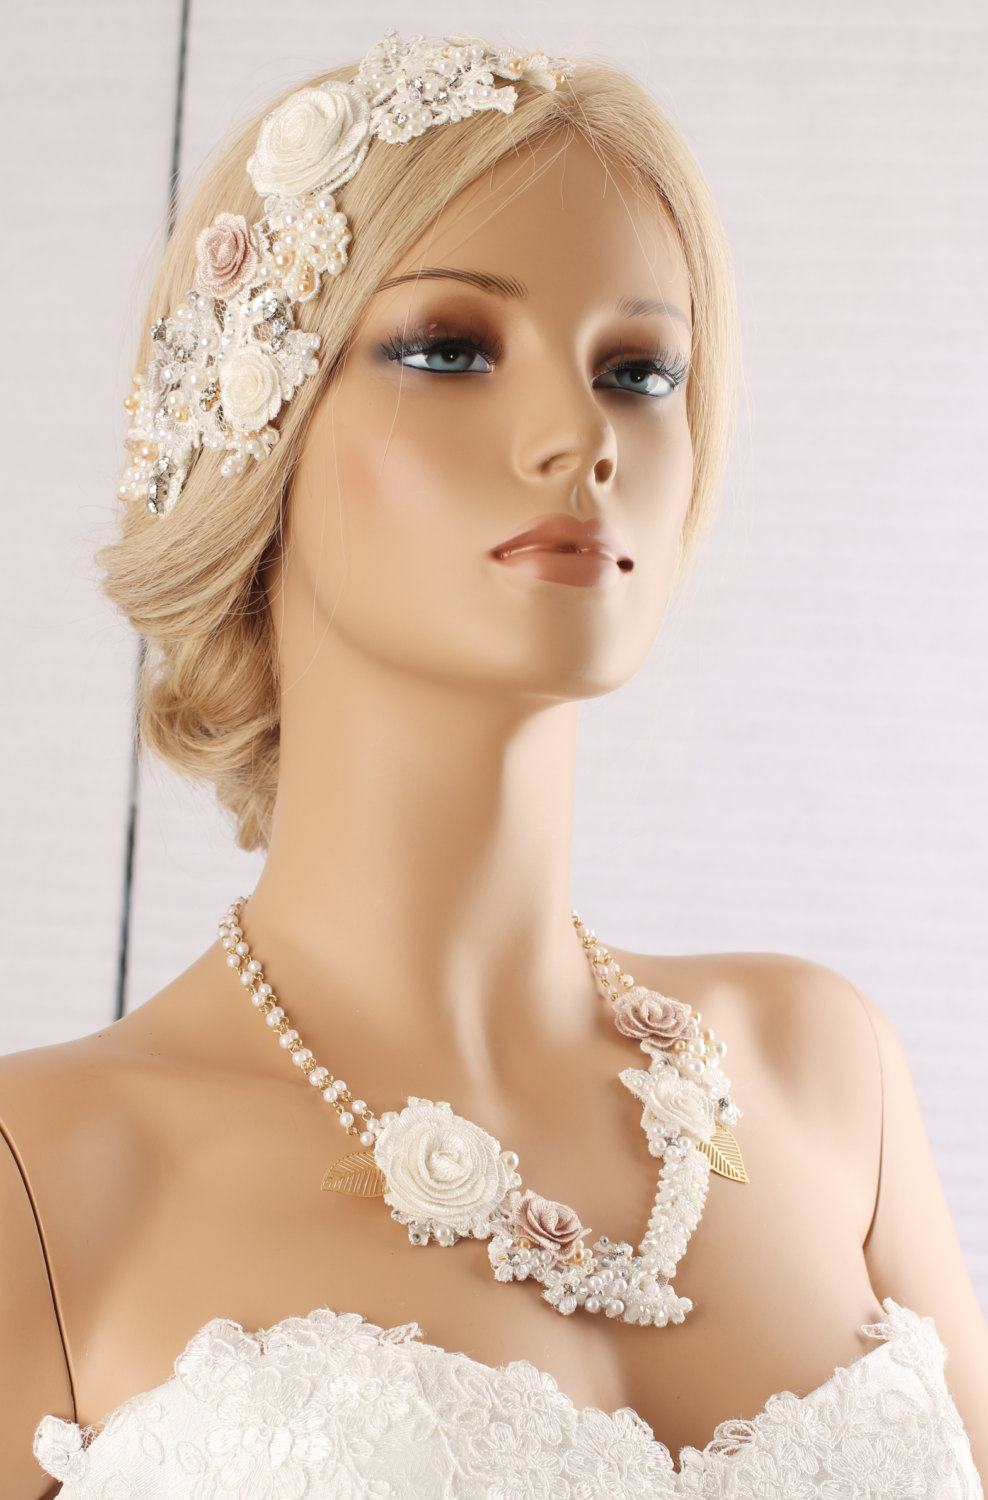 Lace Hairpiece, Wedding Hair Accessories, Headpiece, Embroidered Flower Combs, Necklace, Pearl